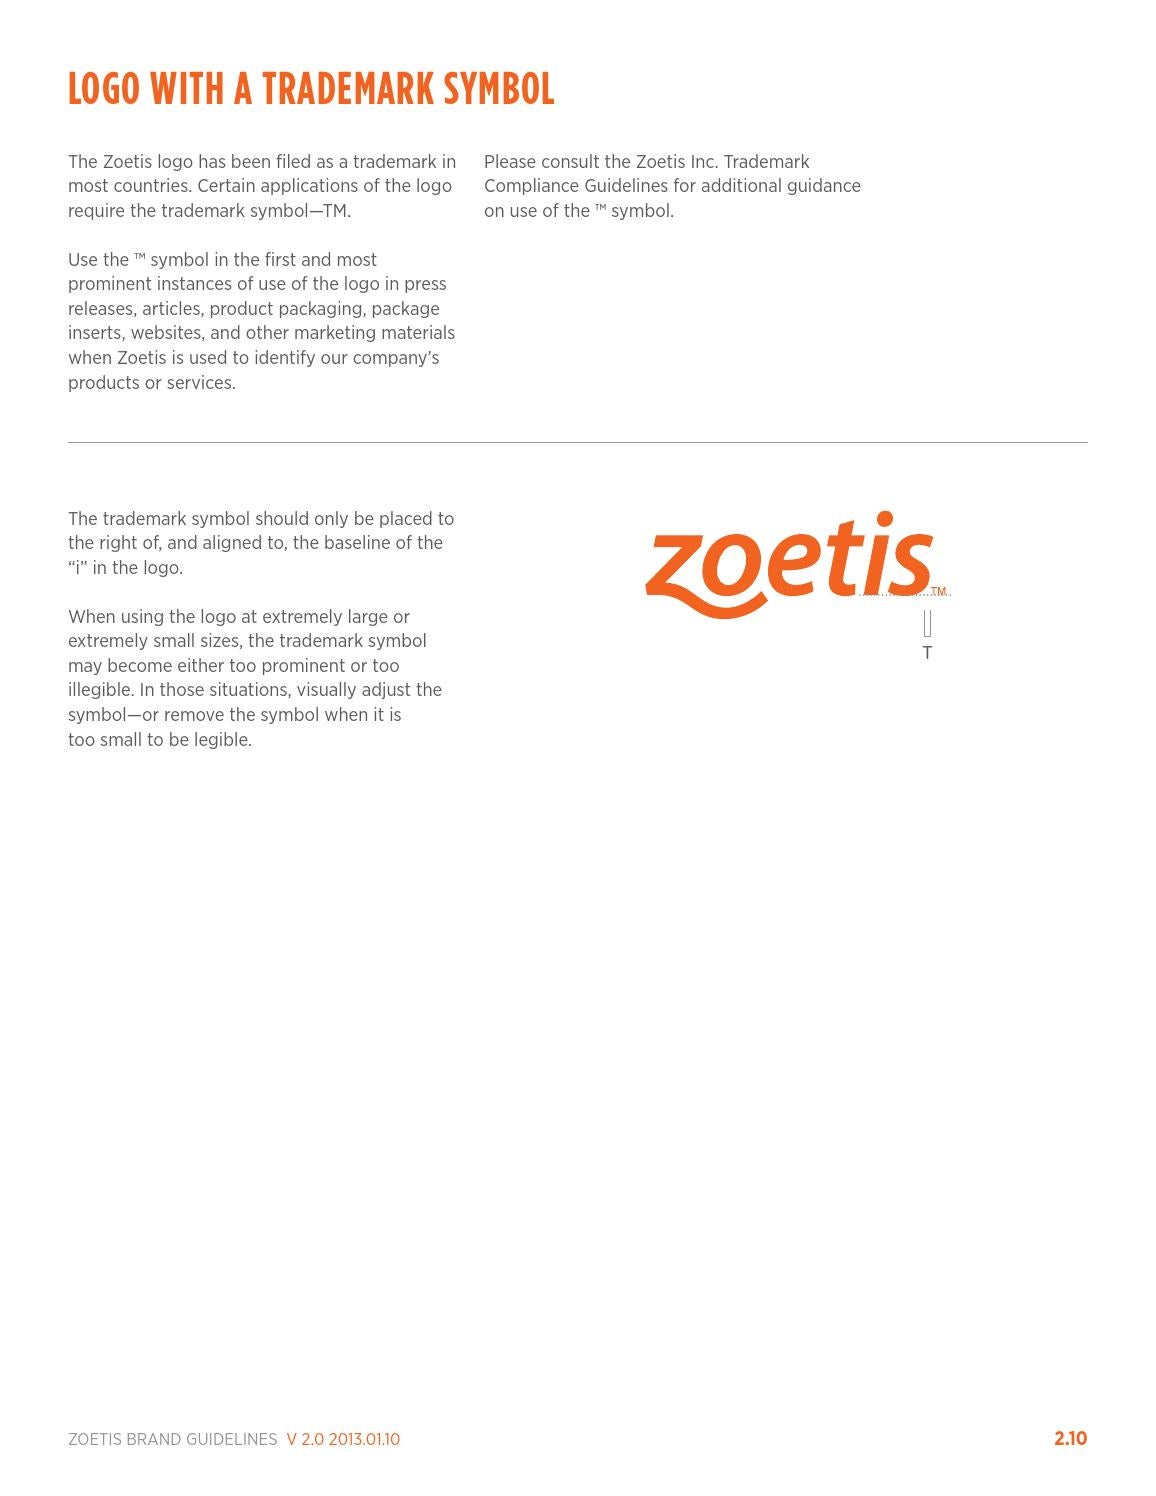 Zoetis Brand Guidelines January 2013 By Ray Bar Issuu